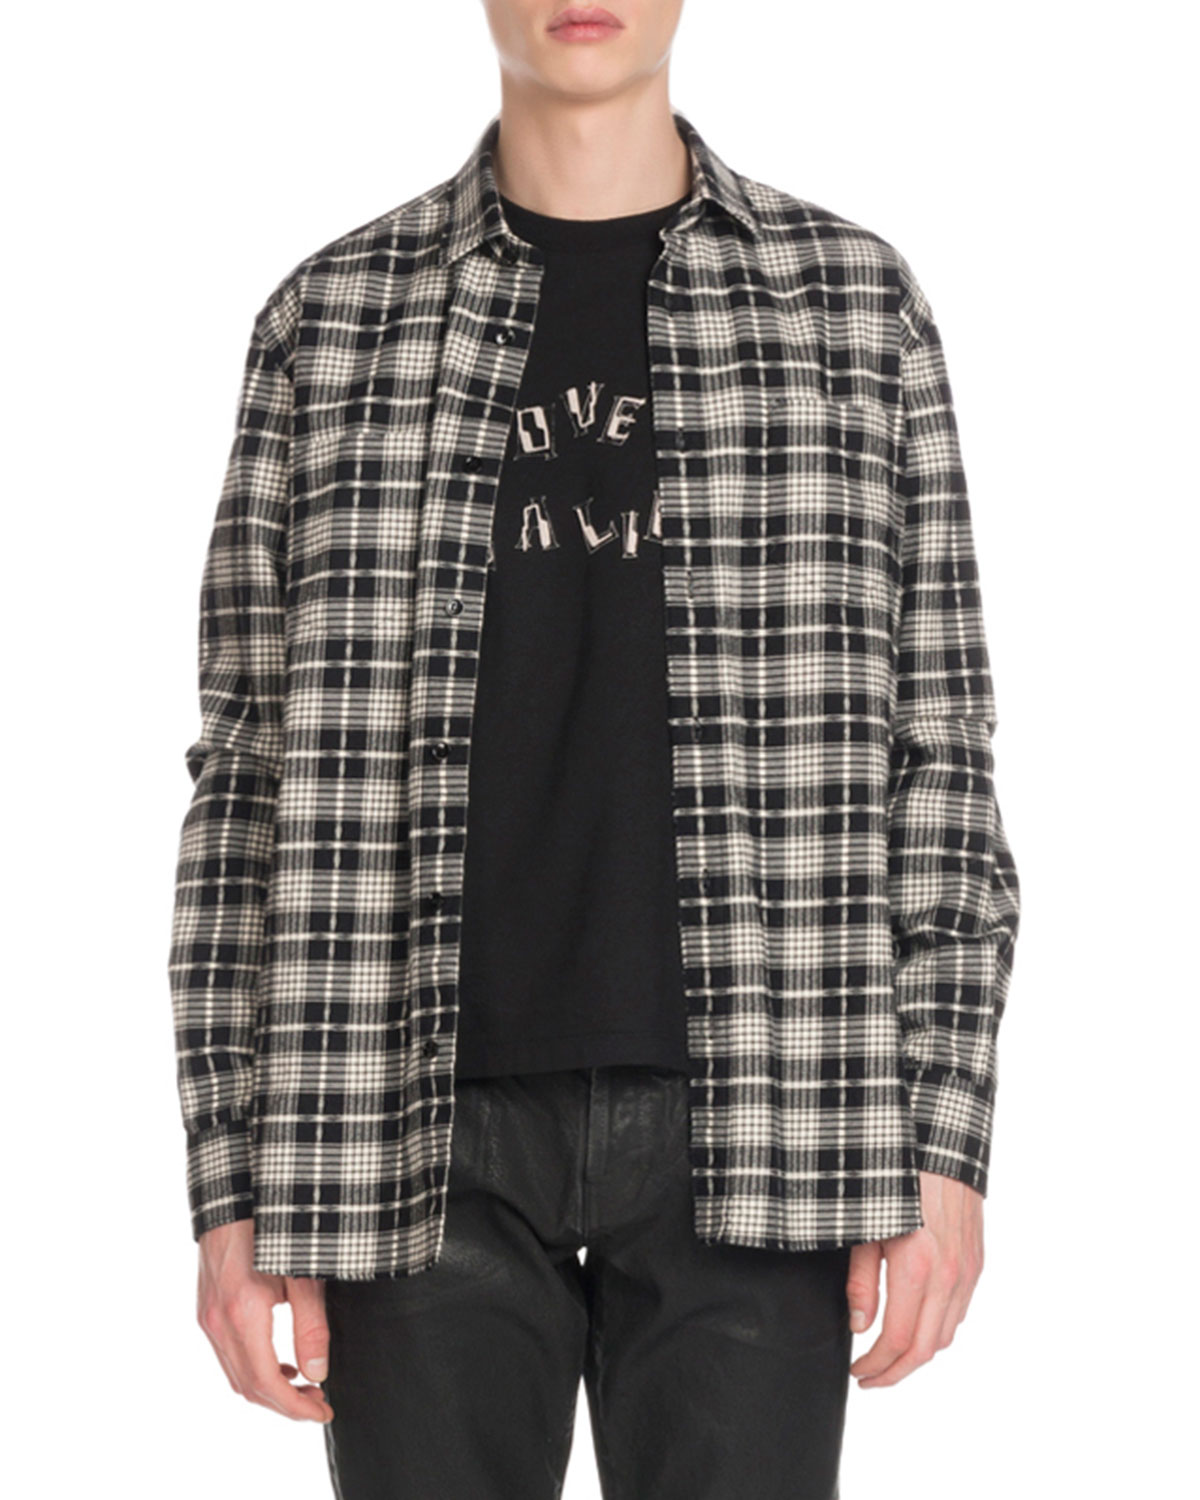 Saint Laurent Men S Cotton Wool Plaid Flannel Shirt Neiman Marcus